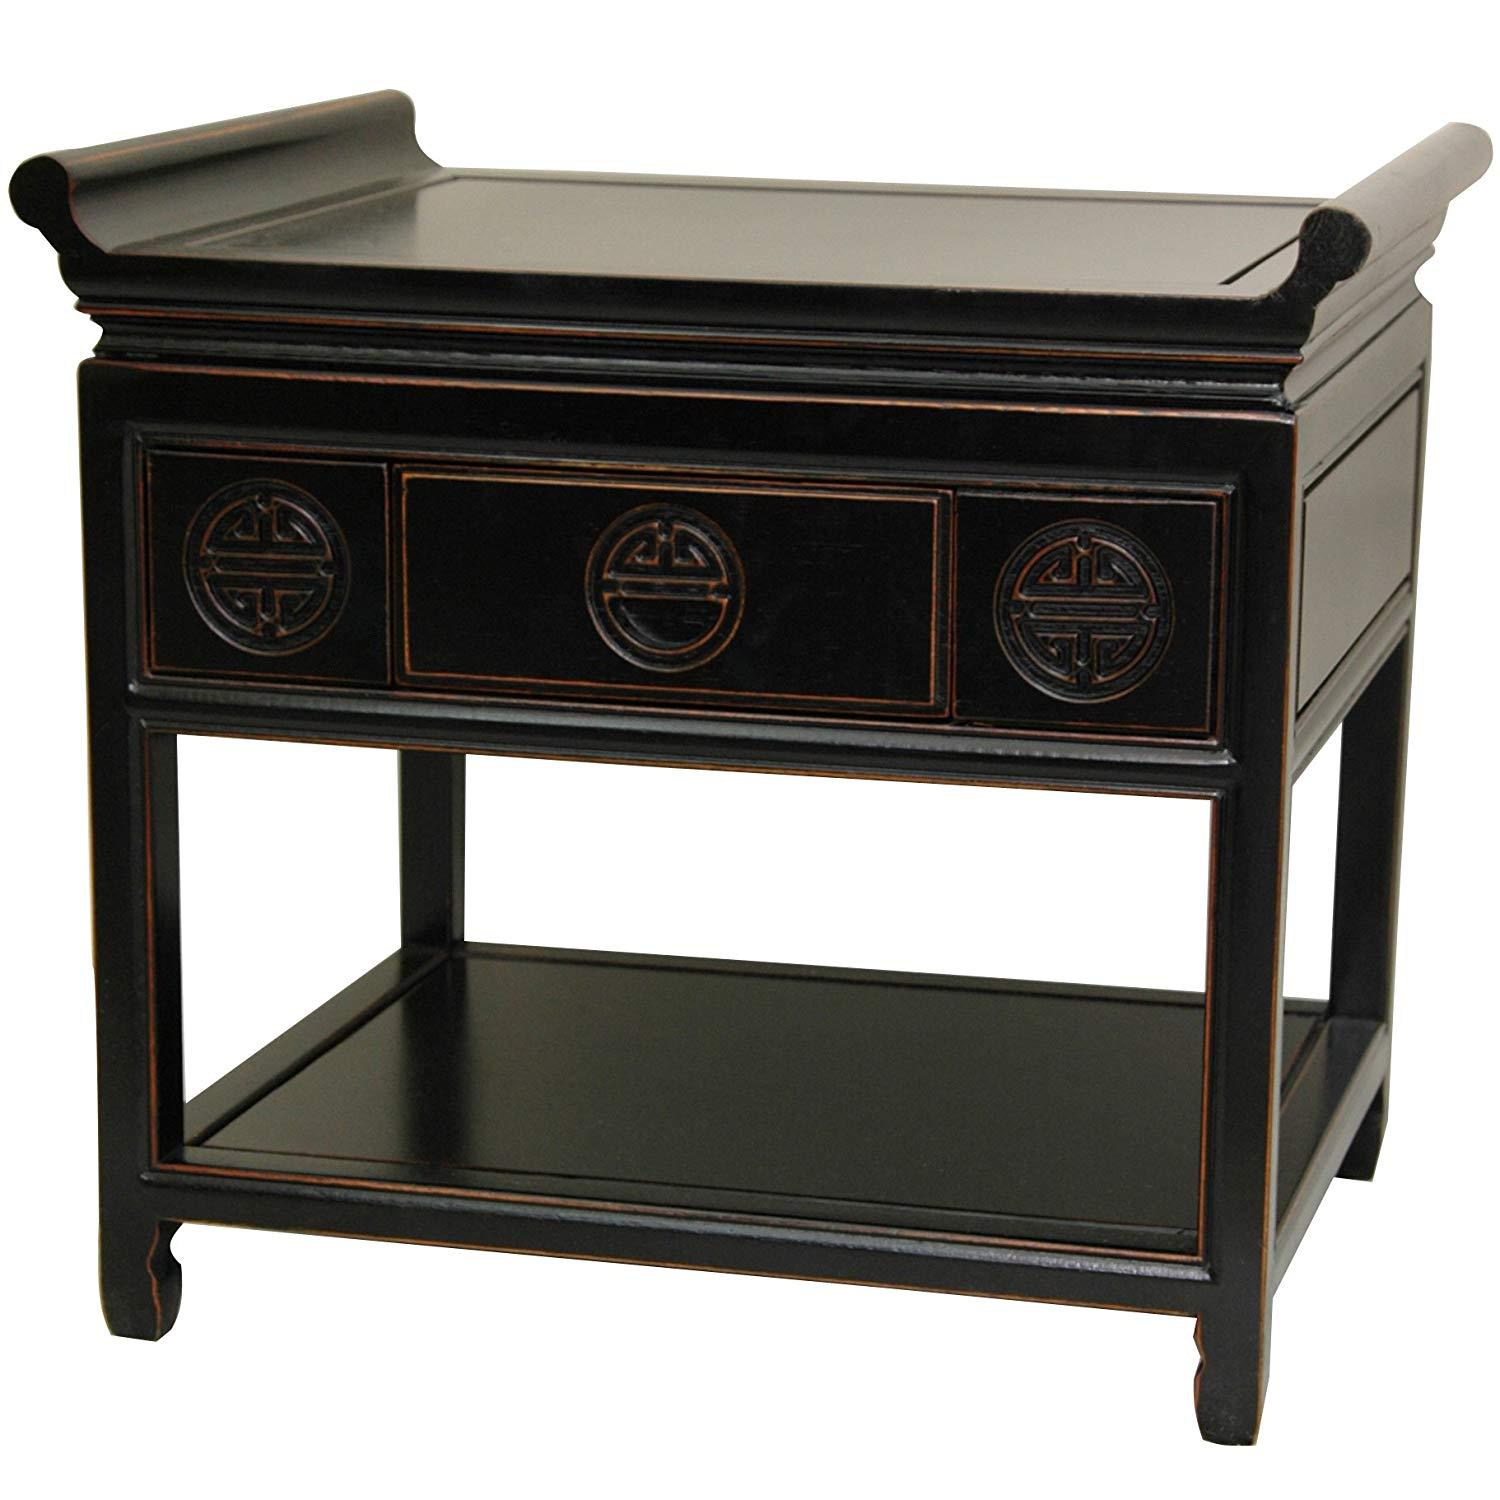 oriental furniture rosewood altar table antique accent black kitchen dining farmhouse breakfast ikea room grey coffee target oak drop leaf inch round tablecloth half side floating